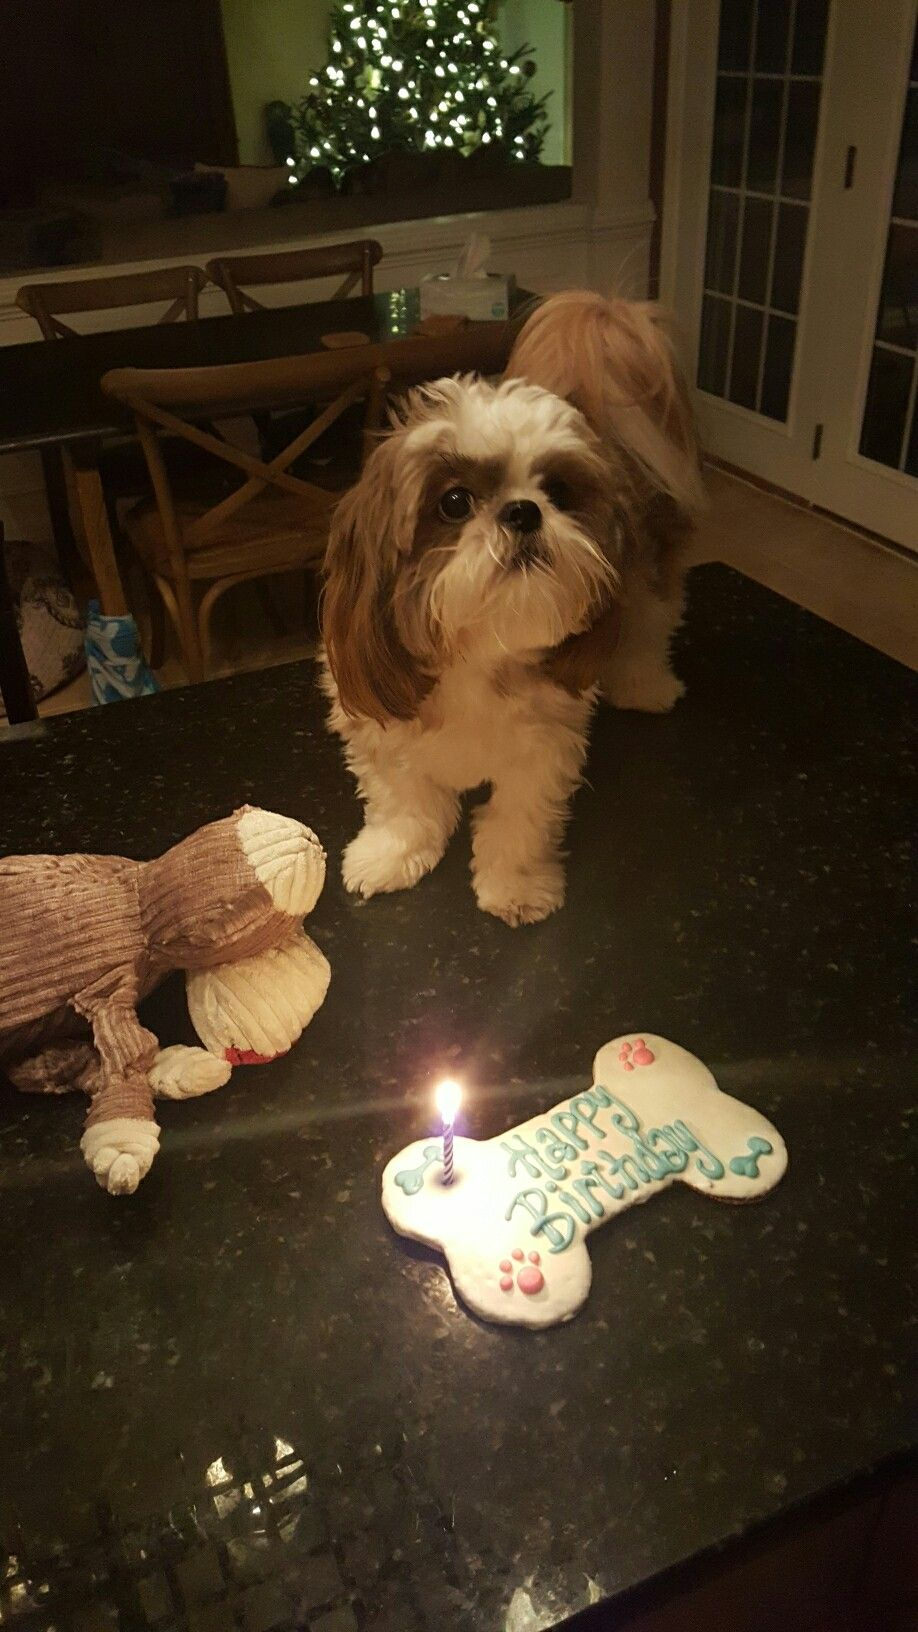 Shih Tzu Winston 1 Year Old Dogs Pinterest Shih Tzu Dogs And